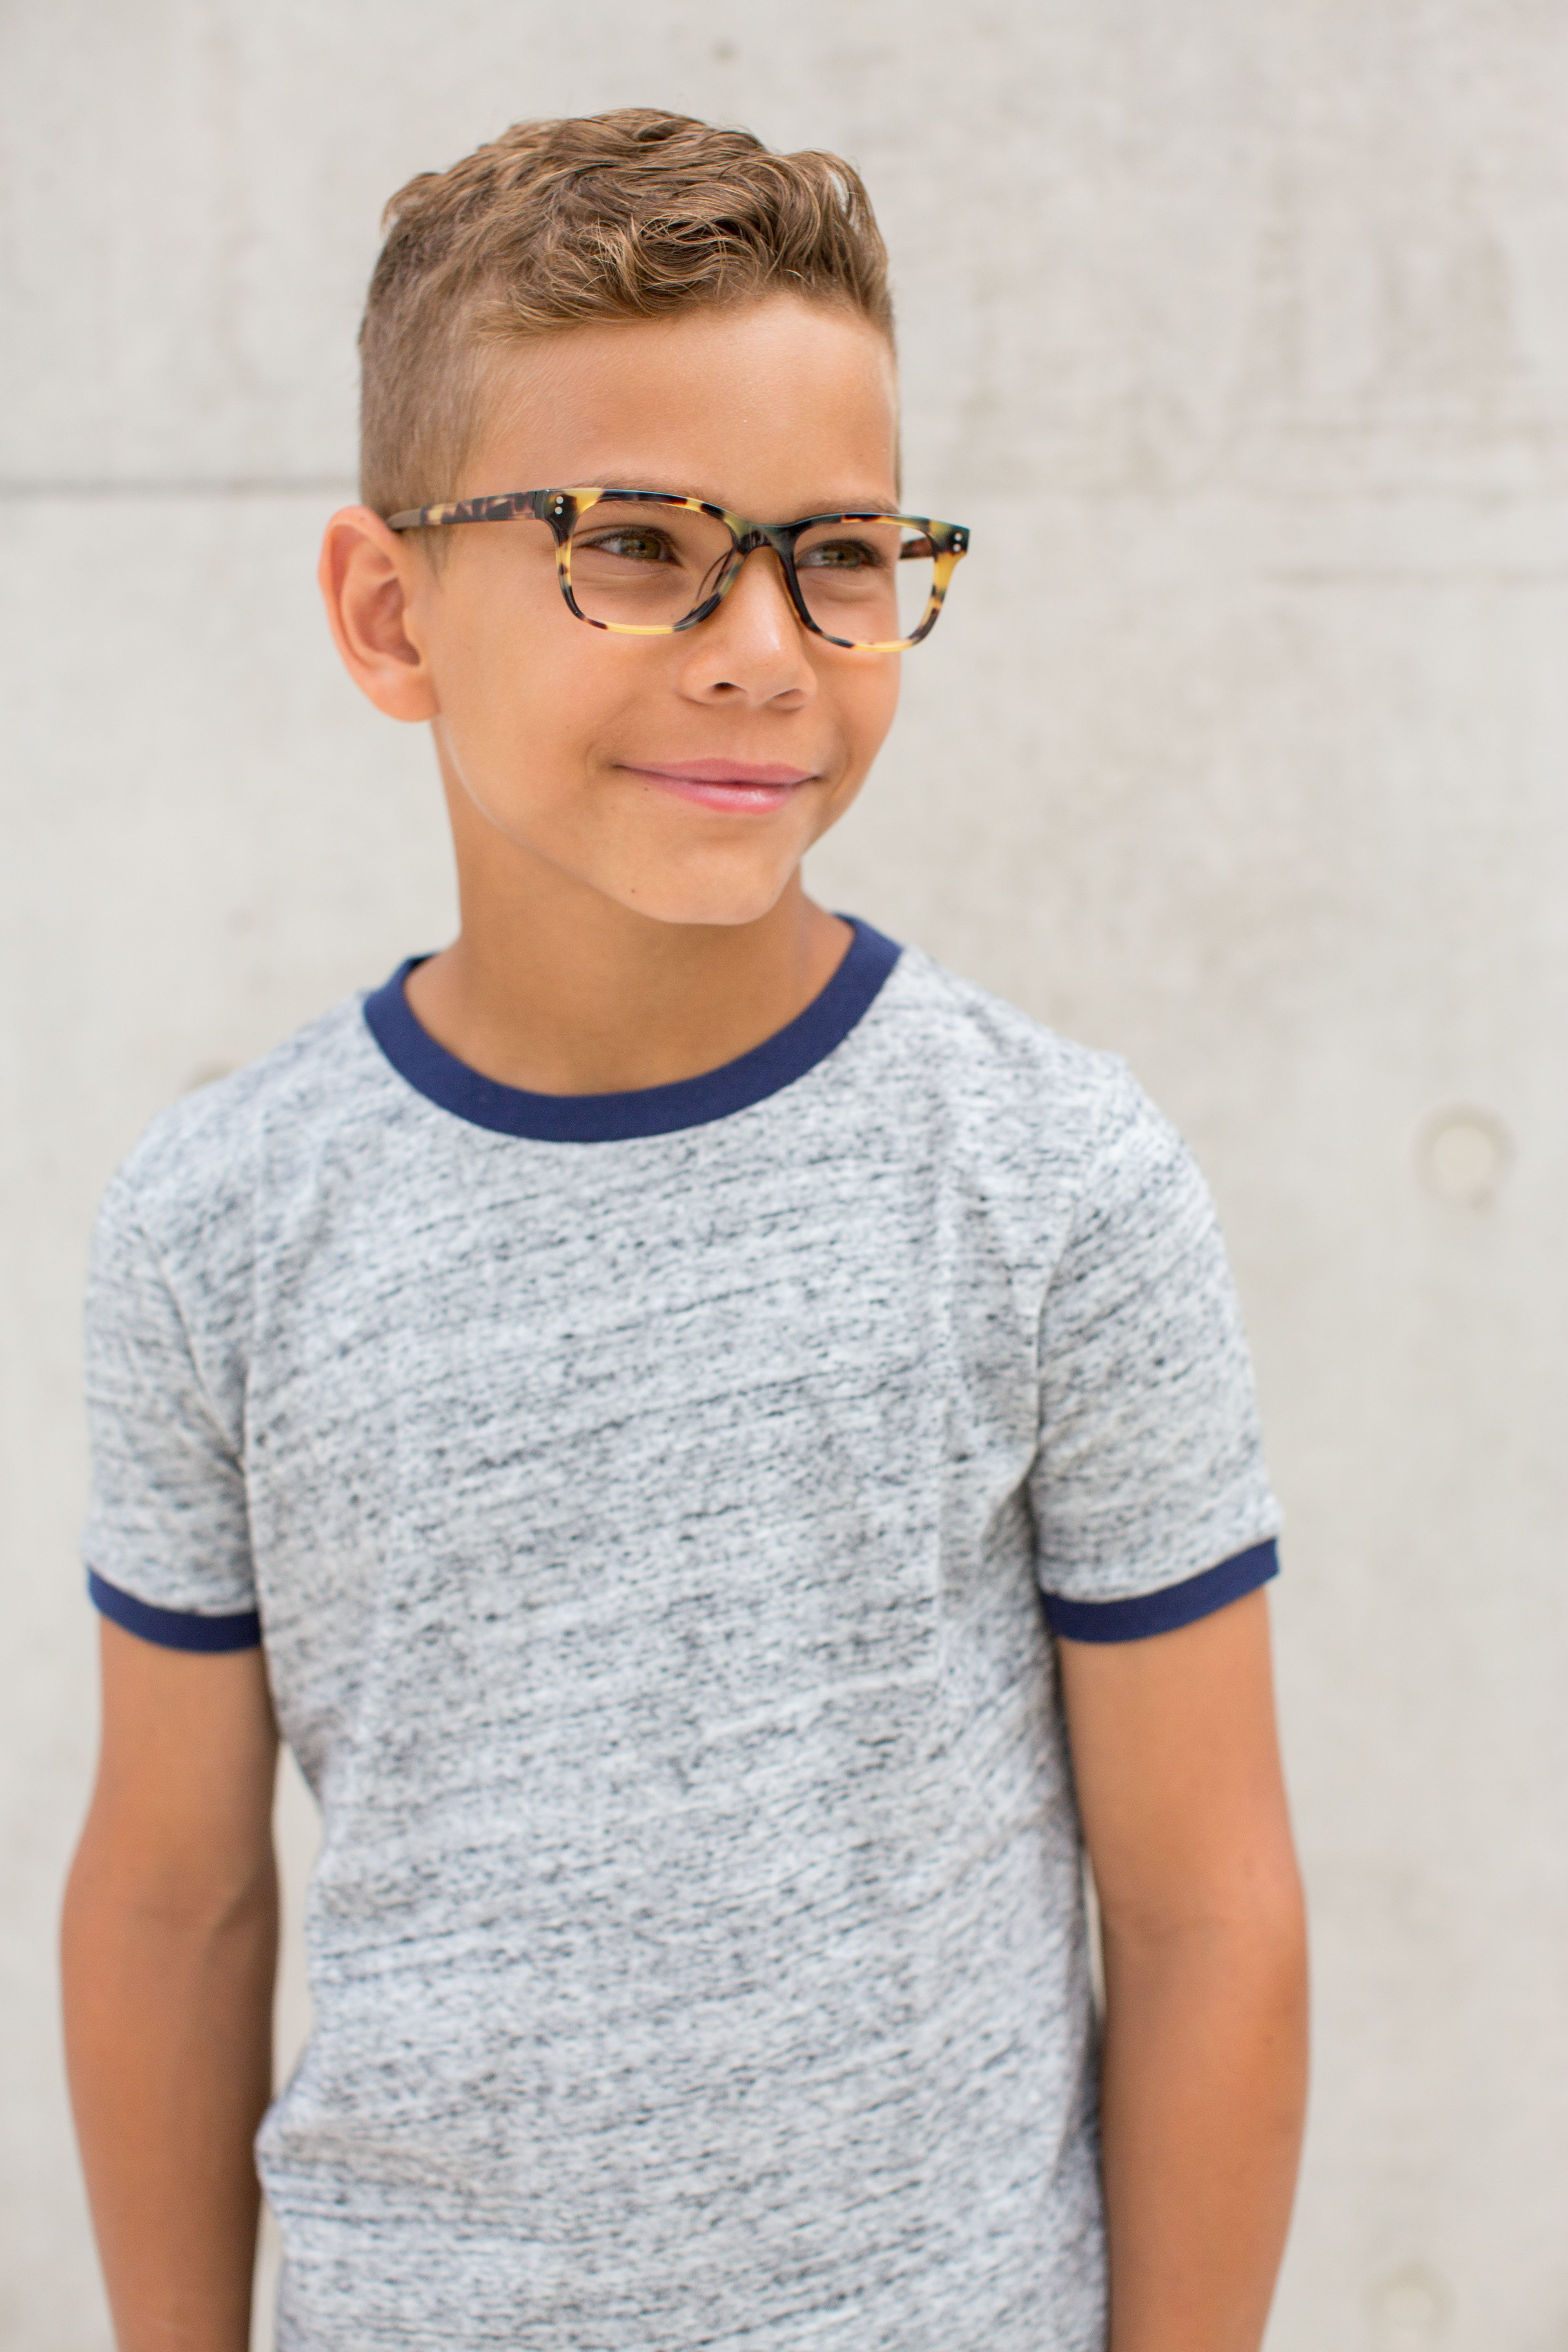 d49eb04fa49 Boys Glasses    Jonas Paul Eyewear    Our Edward square boys glasses frames  are offered in classic and contemporary limited edition color options to ...